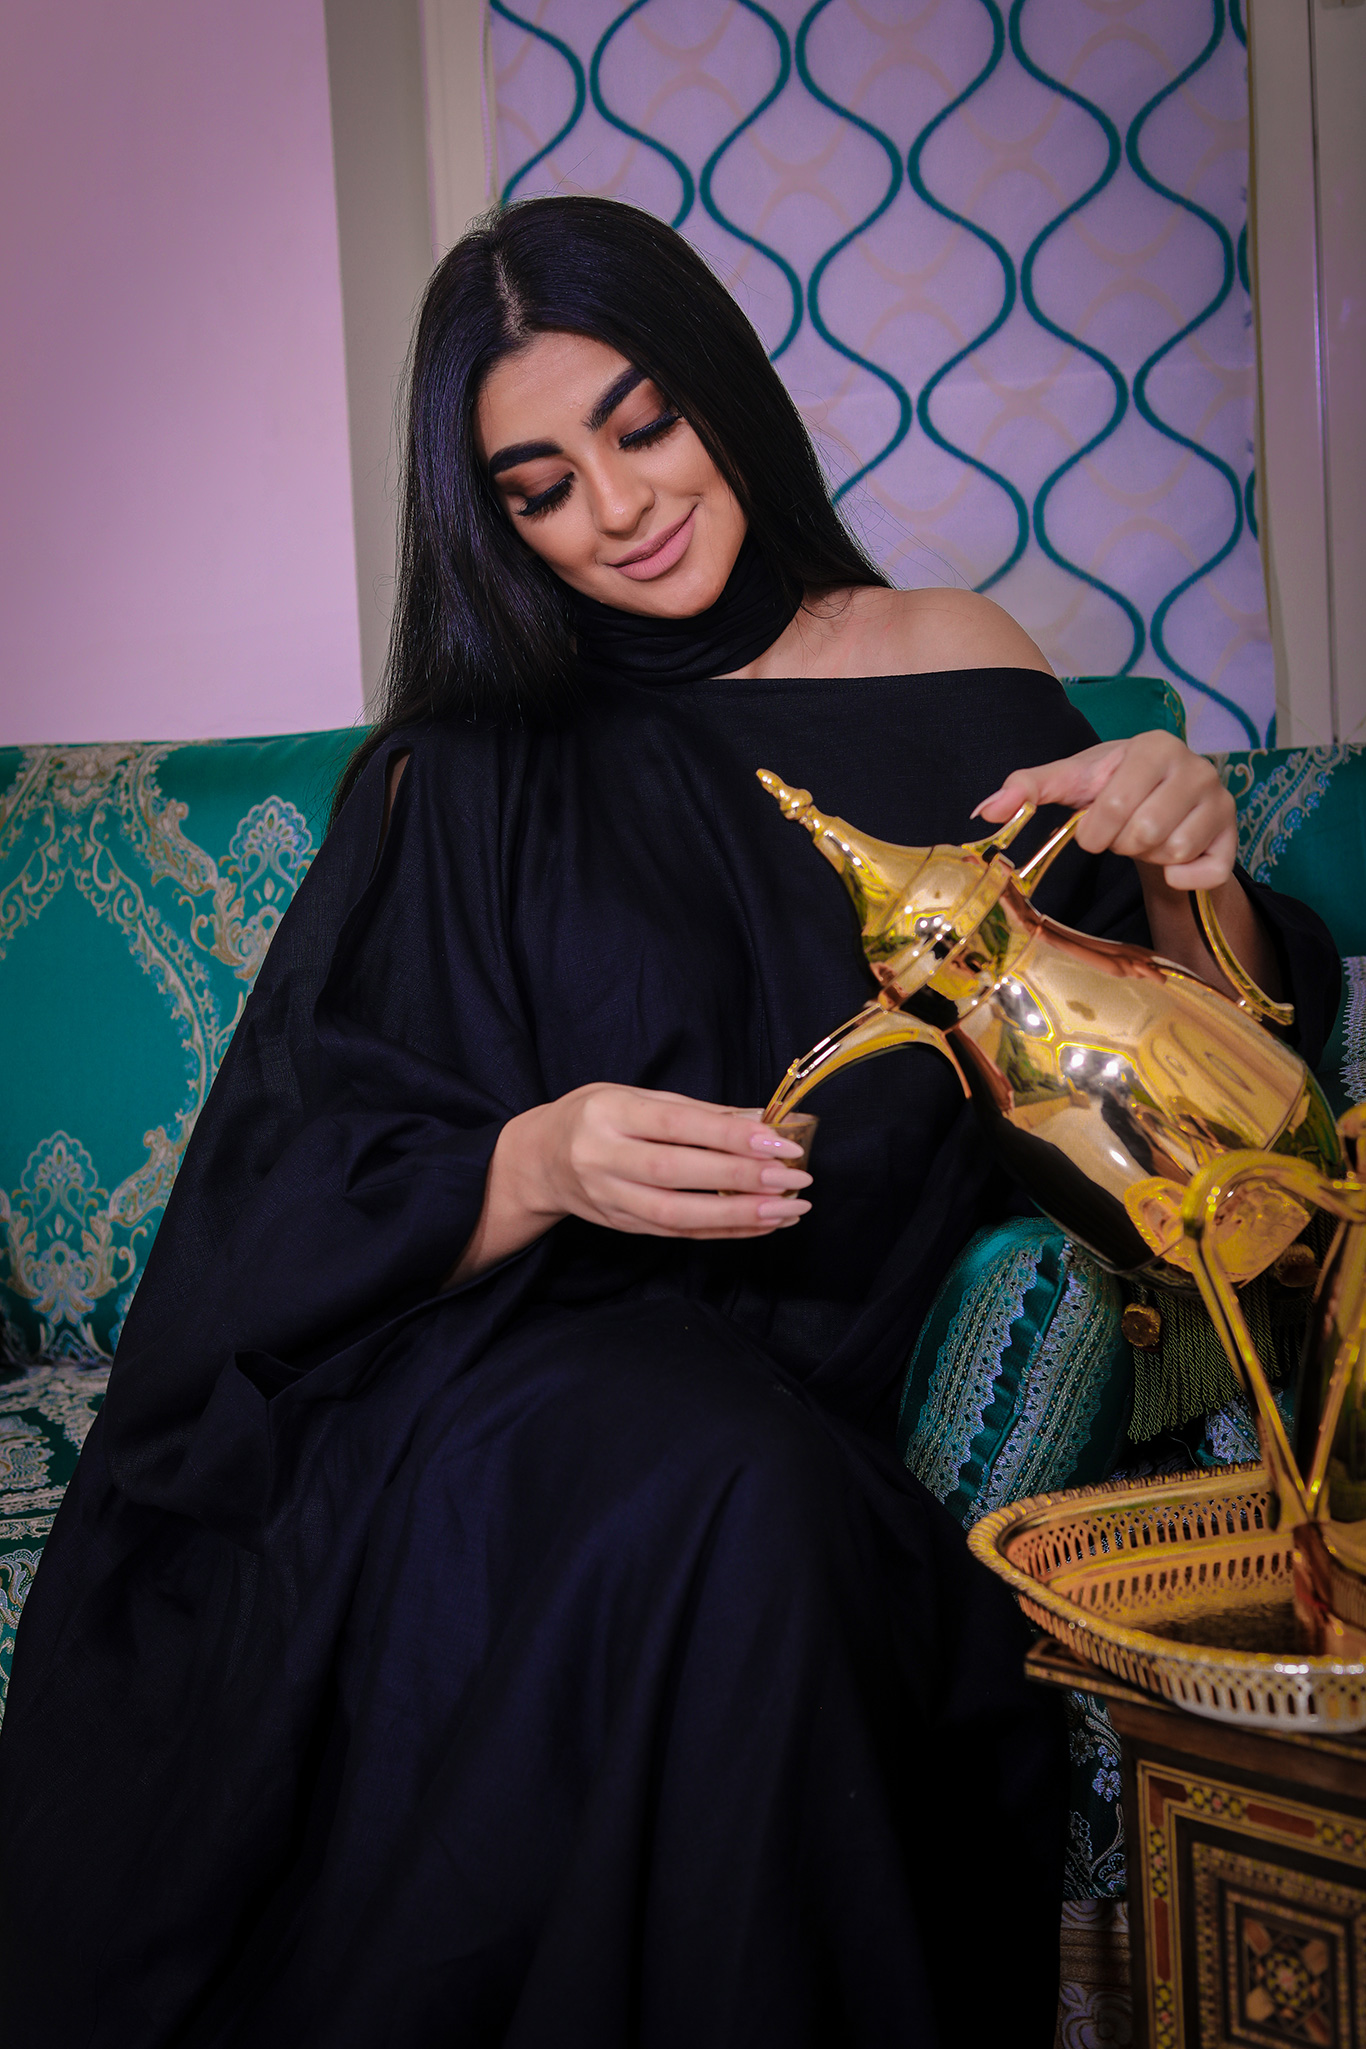 Female Photographer for Fashion Photography in Doha Qatar